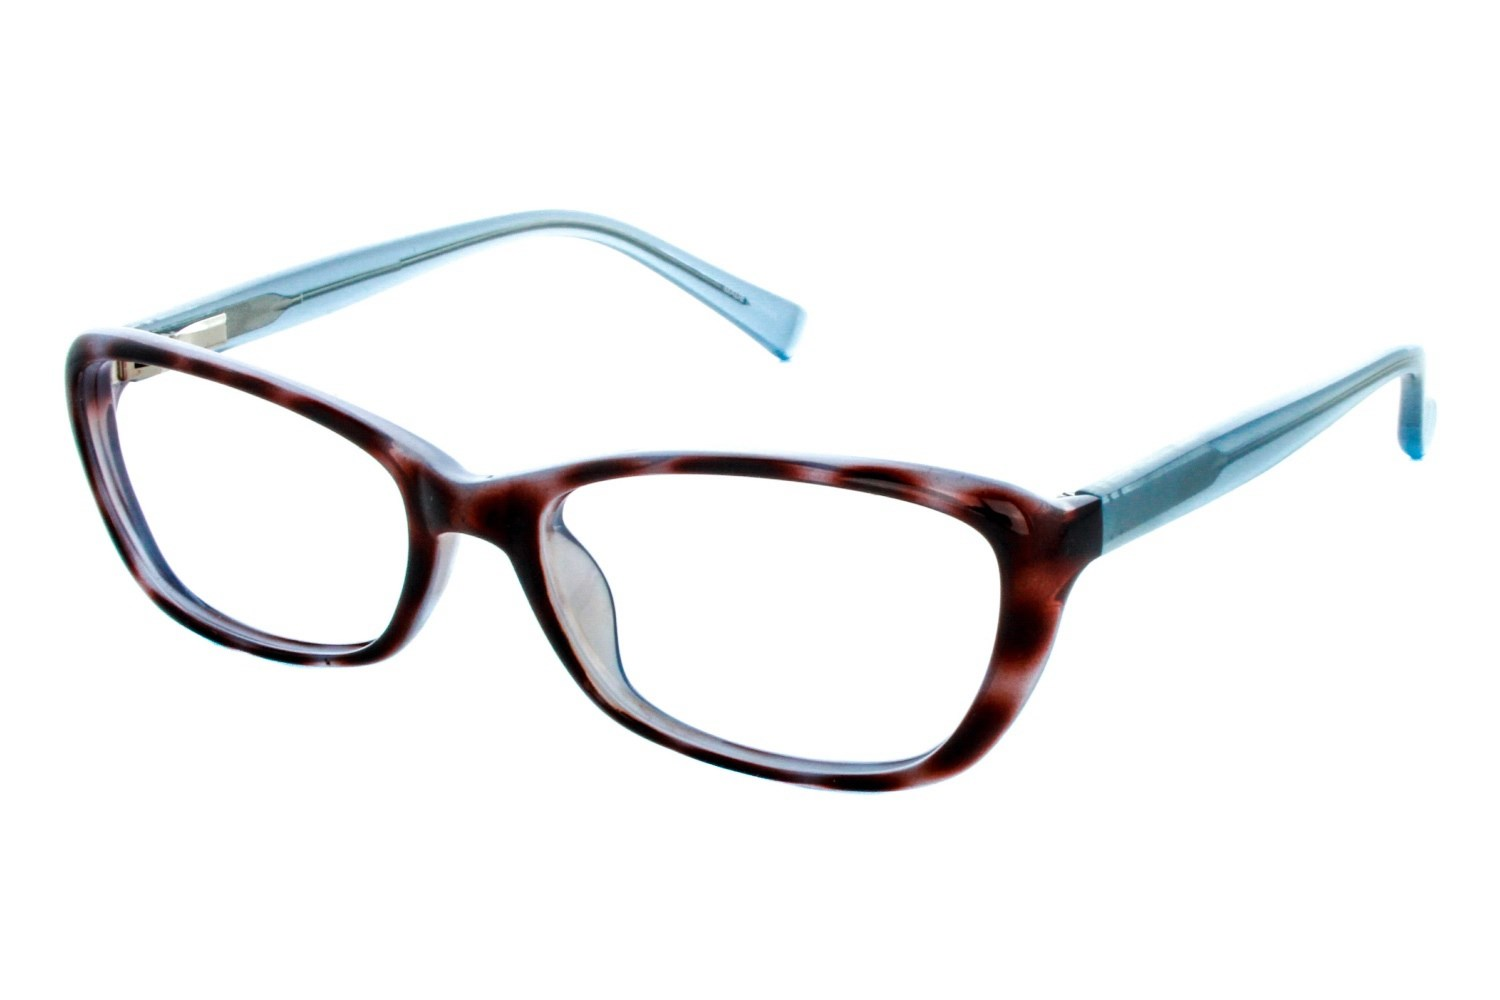 Lunettos Amanda Prescription Eyeglasses Frames